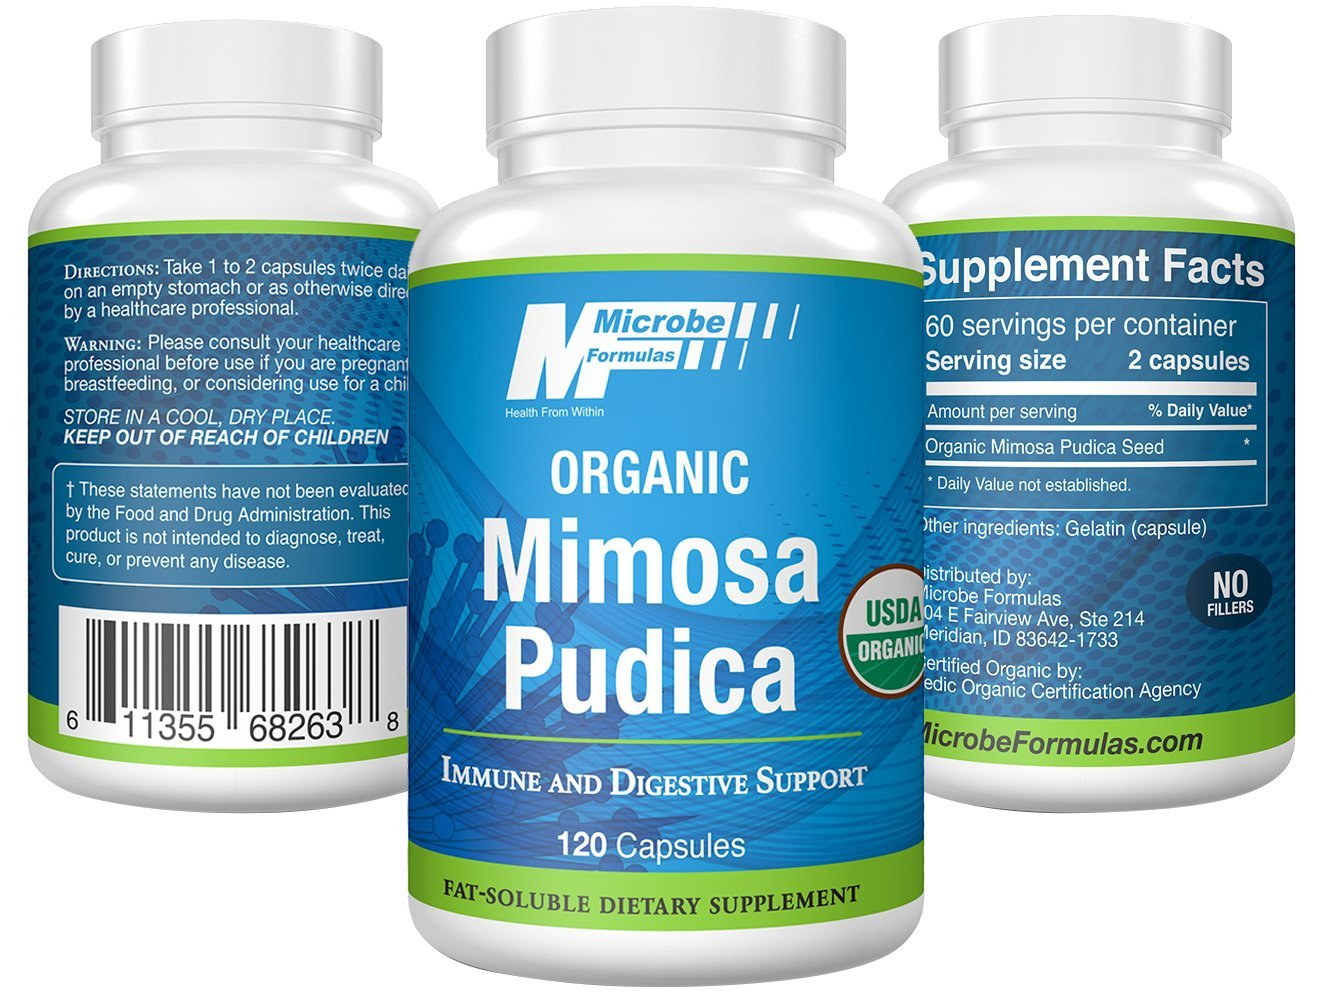 Intestinal Support - Microbe Formulas Mimosa Pudica- 120 Capsules - Supports Detoxification - Antimicrobial Benefits - Fat Soluble Organic Supplement - Dietary Supplement - Healthy Intestinal Tract by Microbe Formulas